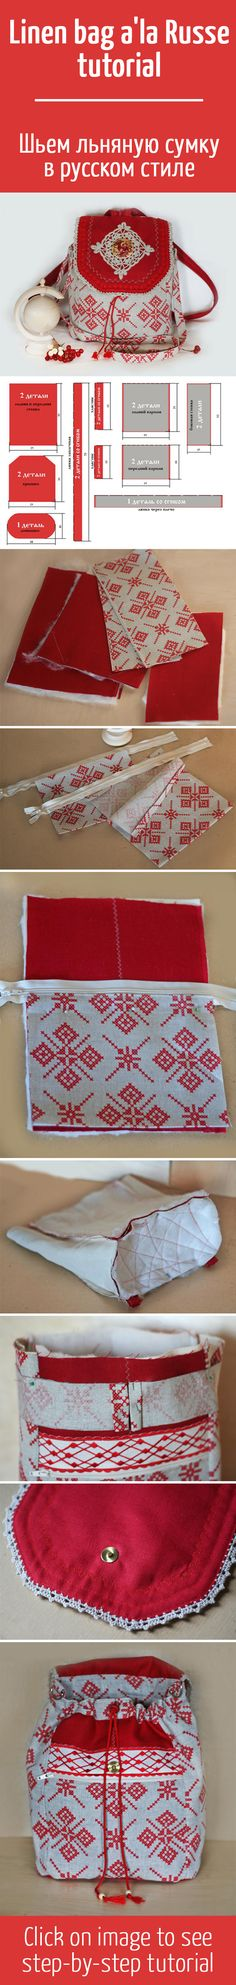 How to sew linen bag a'la Russe tutorial